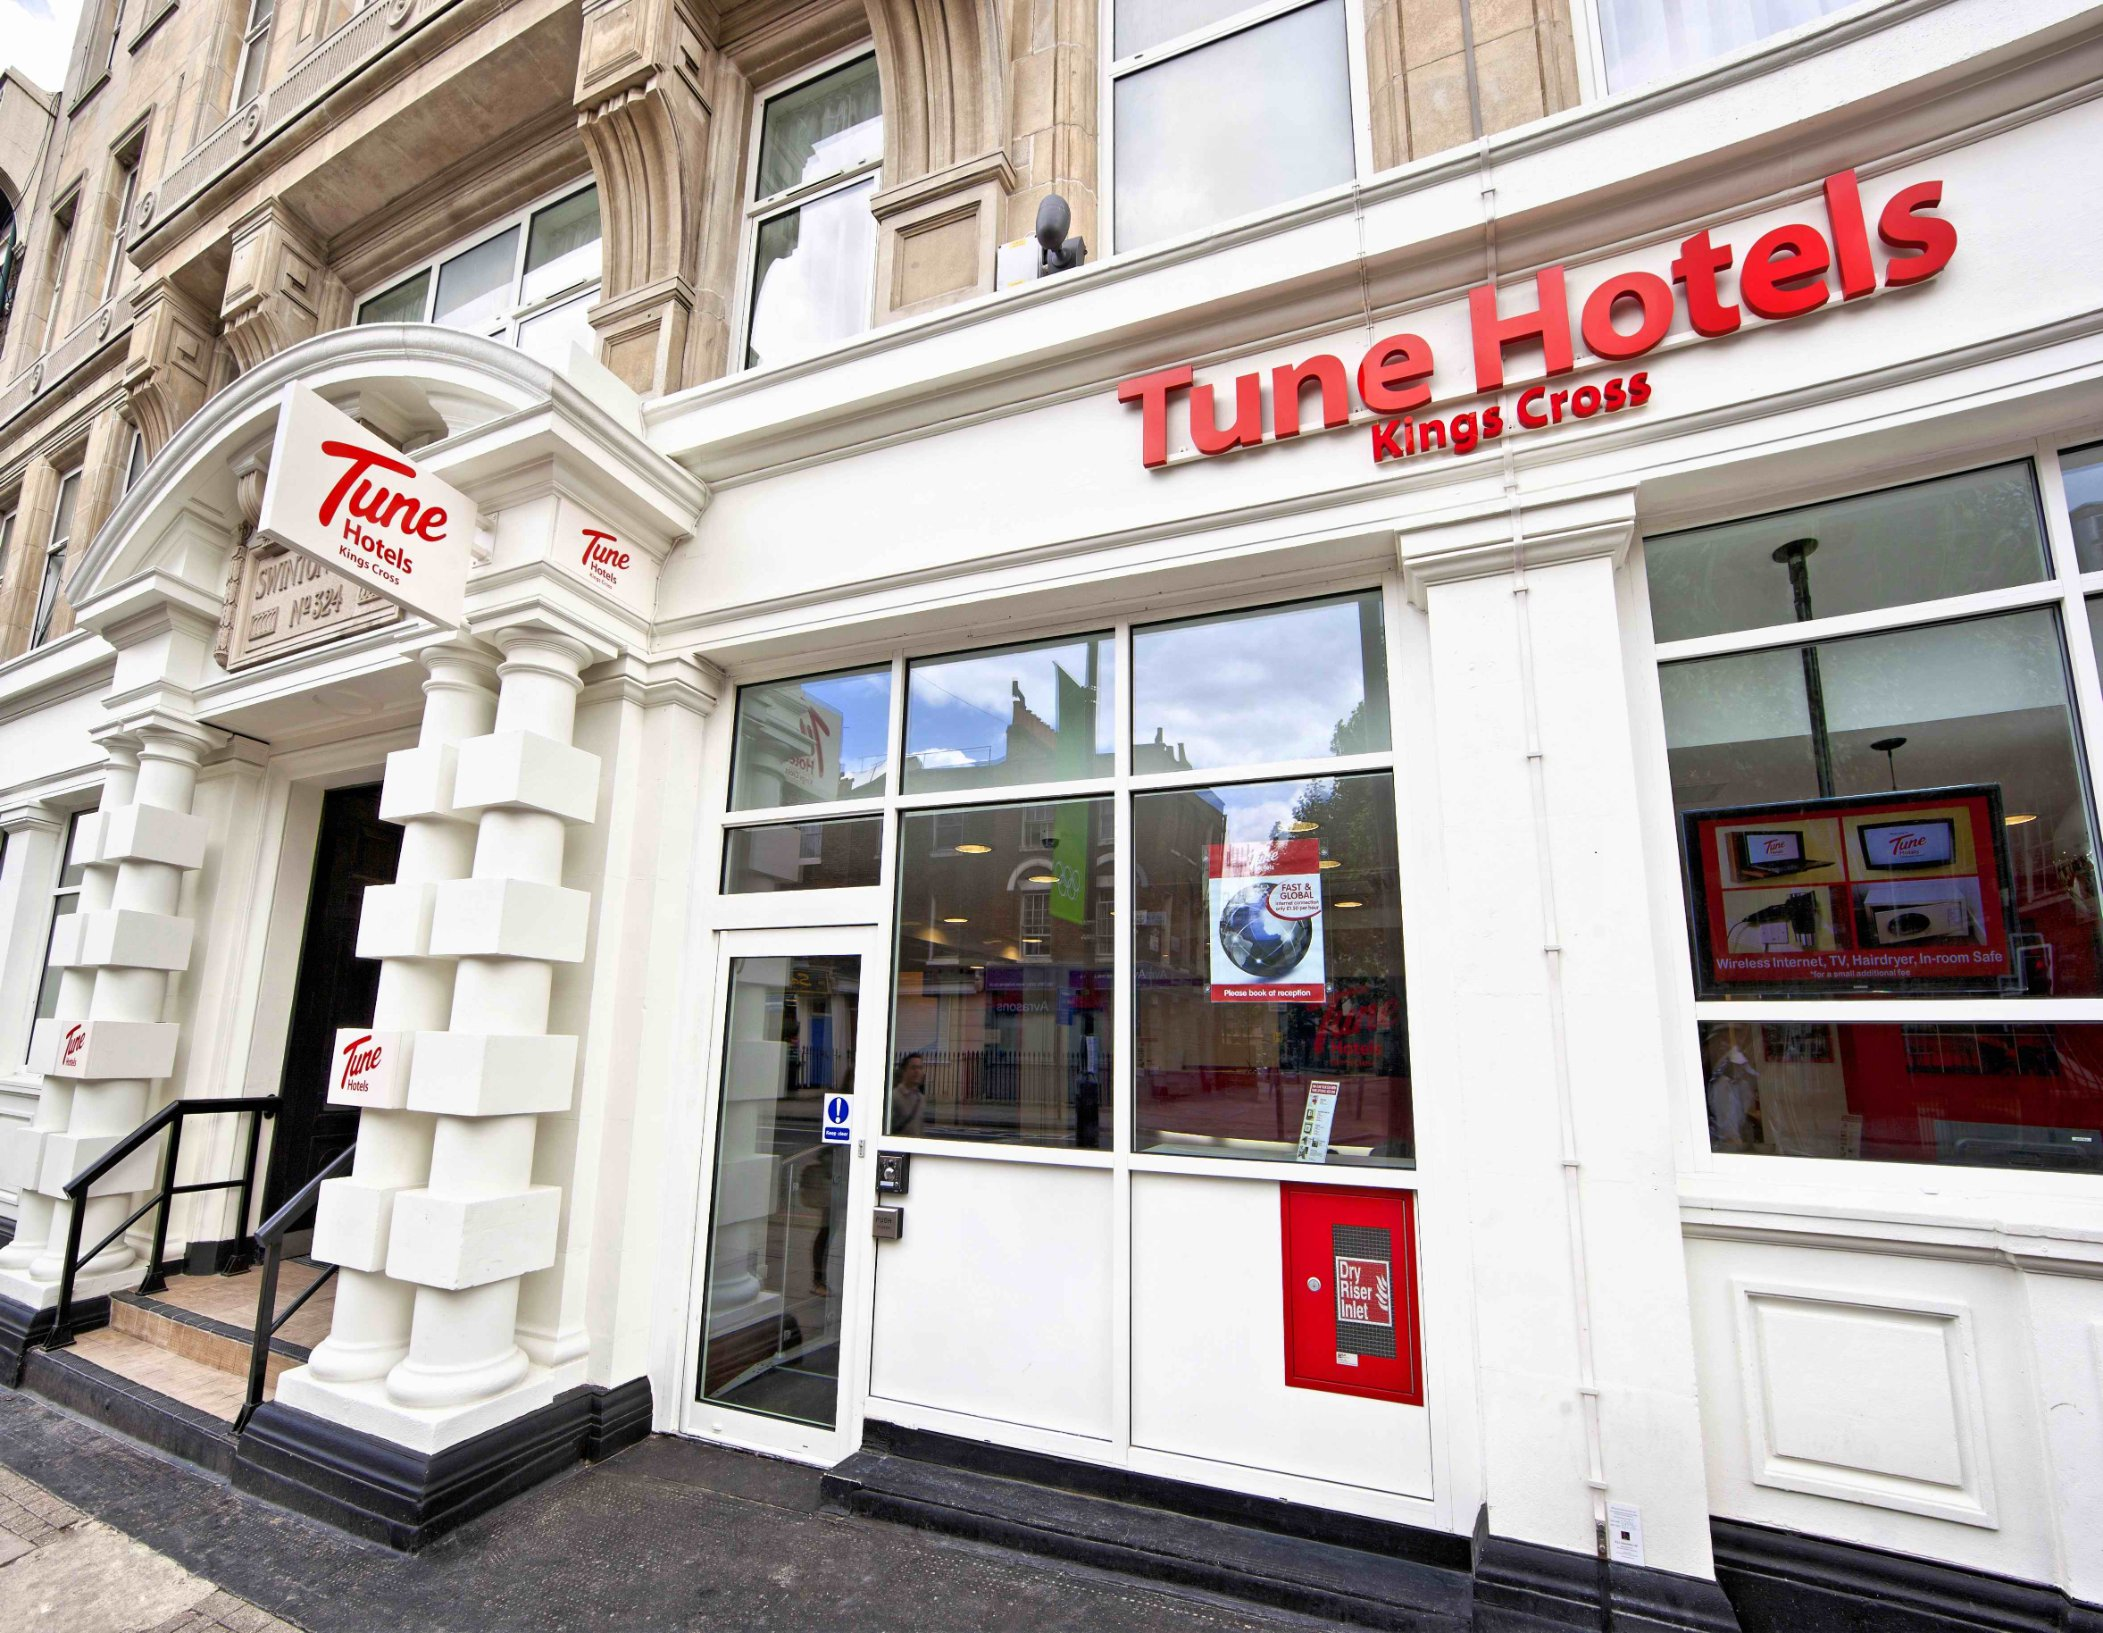 What S Up With All The Strange Hotel Names Cnn Travel